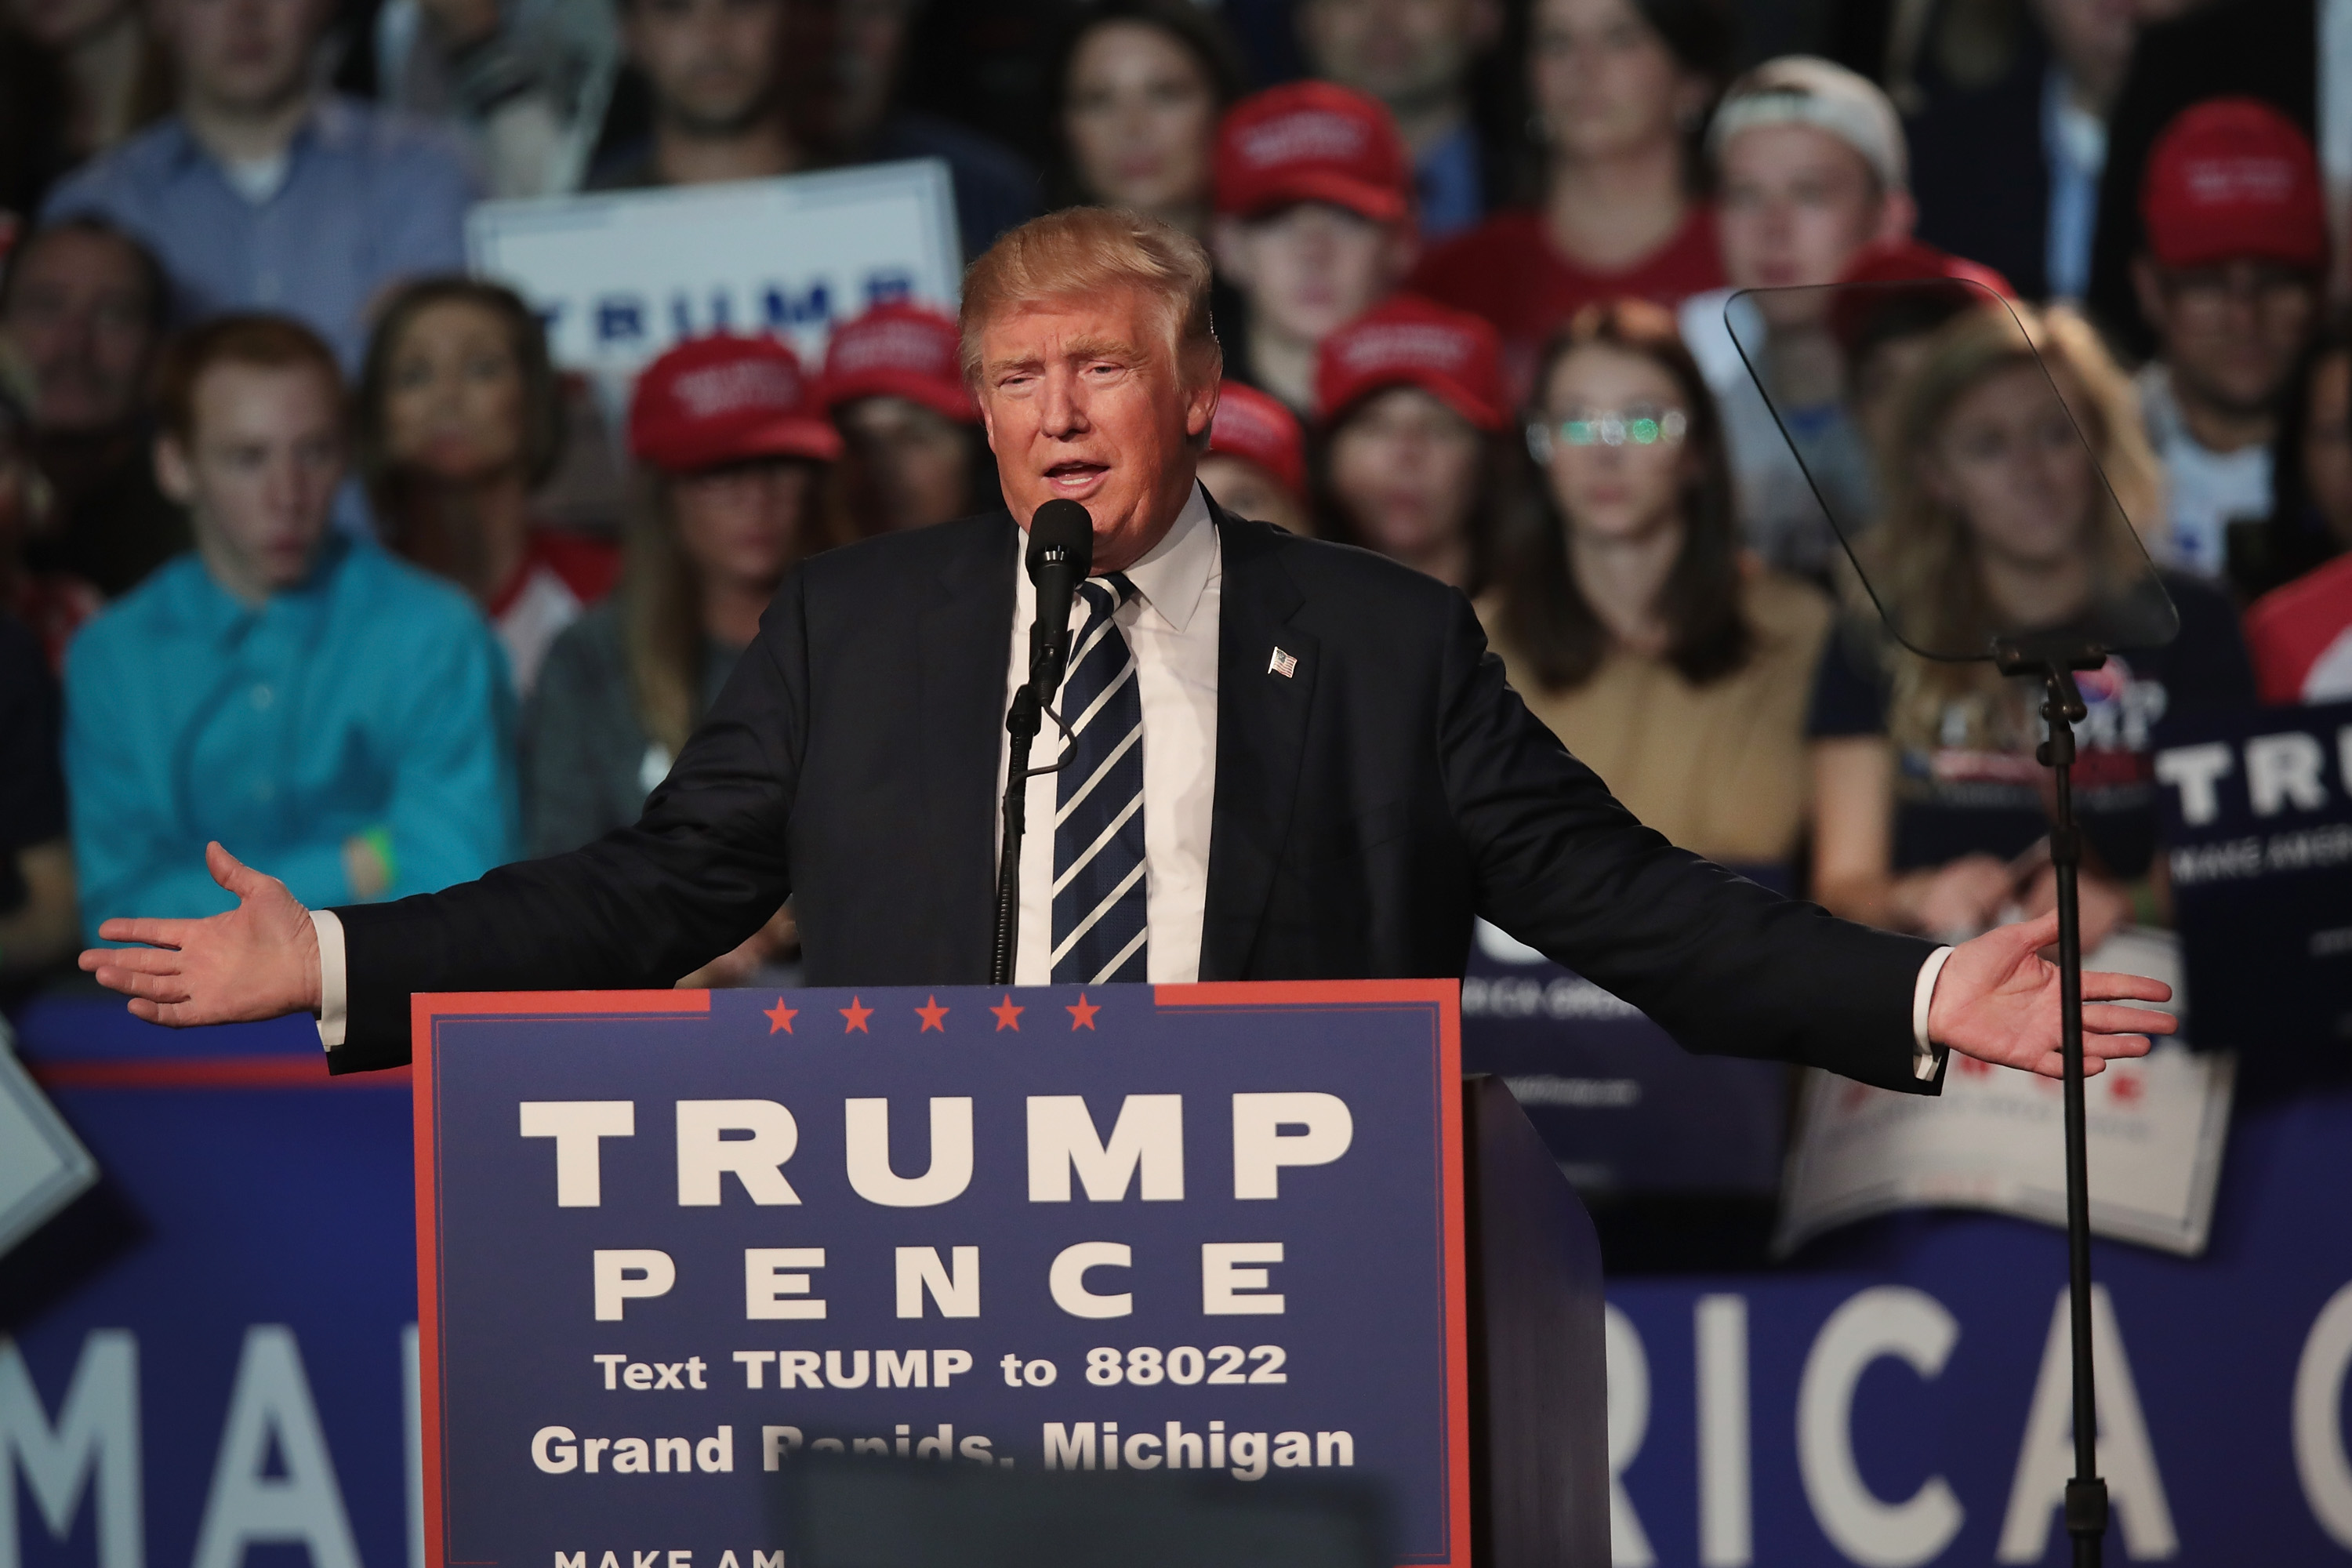 Just FYI: Donald Trump just won Indiana, Kentucky, and West Virginia